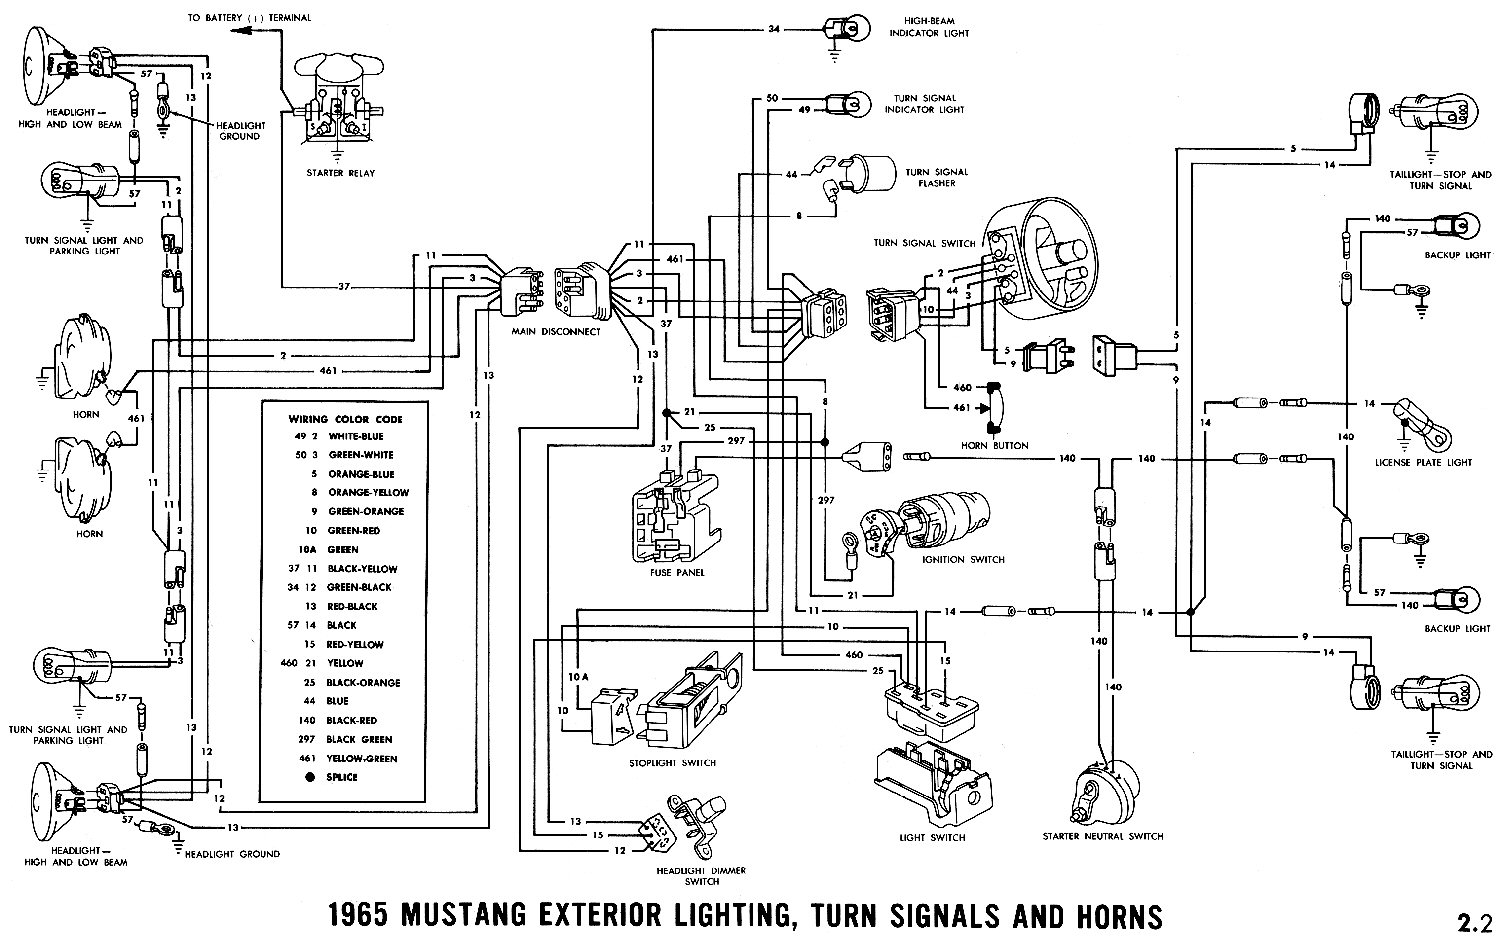 alternator wiring diagram for 1965 mustang